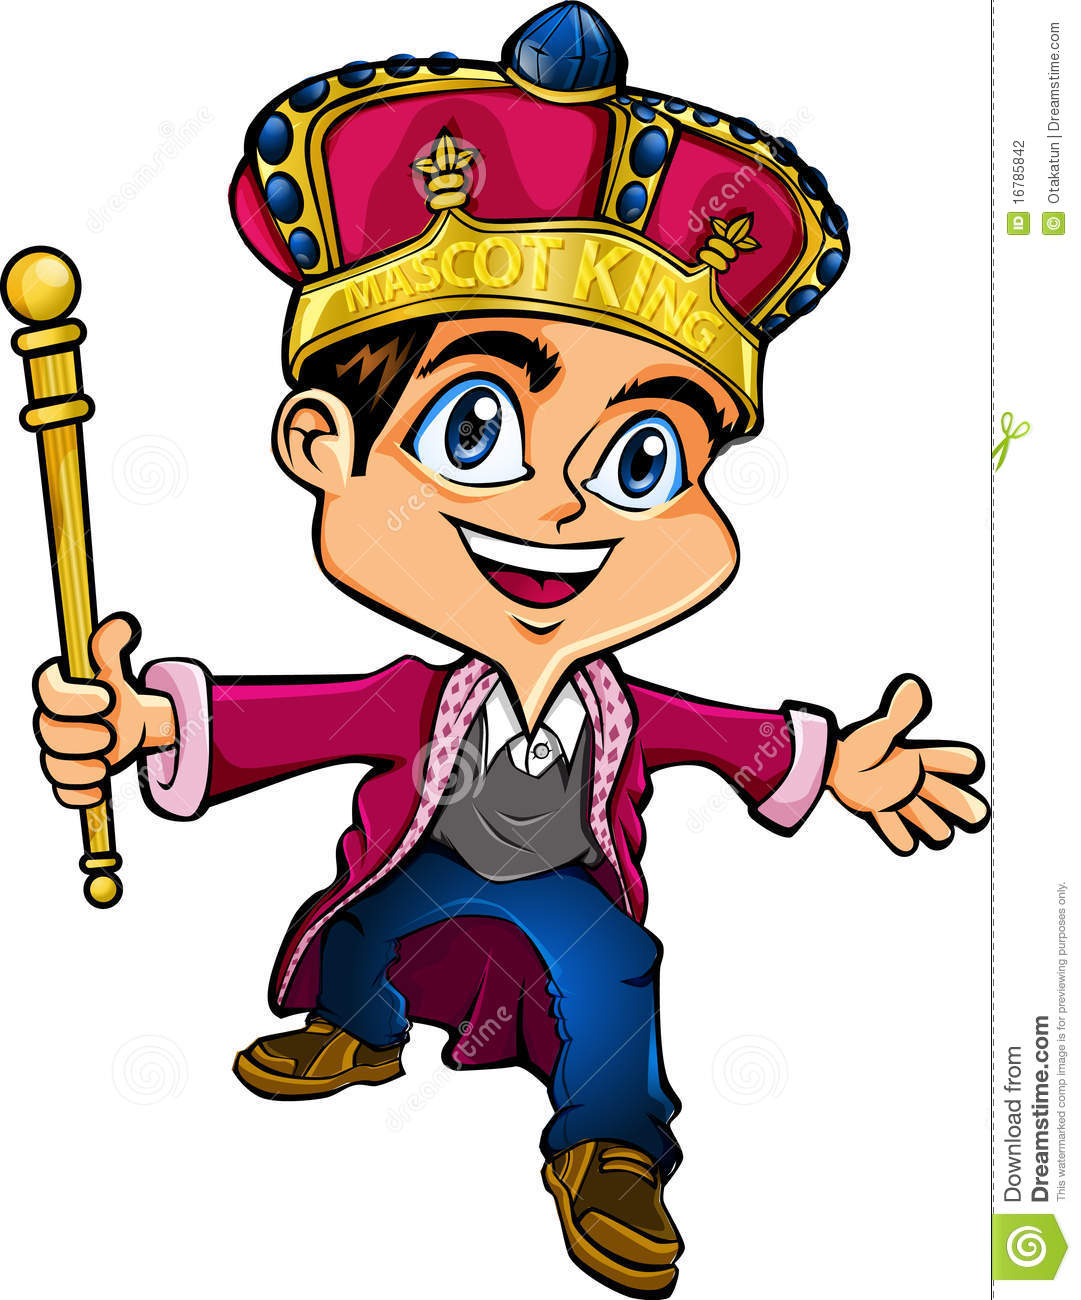 King clipart image library download King Clip Art | Clipart Panda - Free Clipart Images image library download